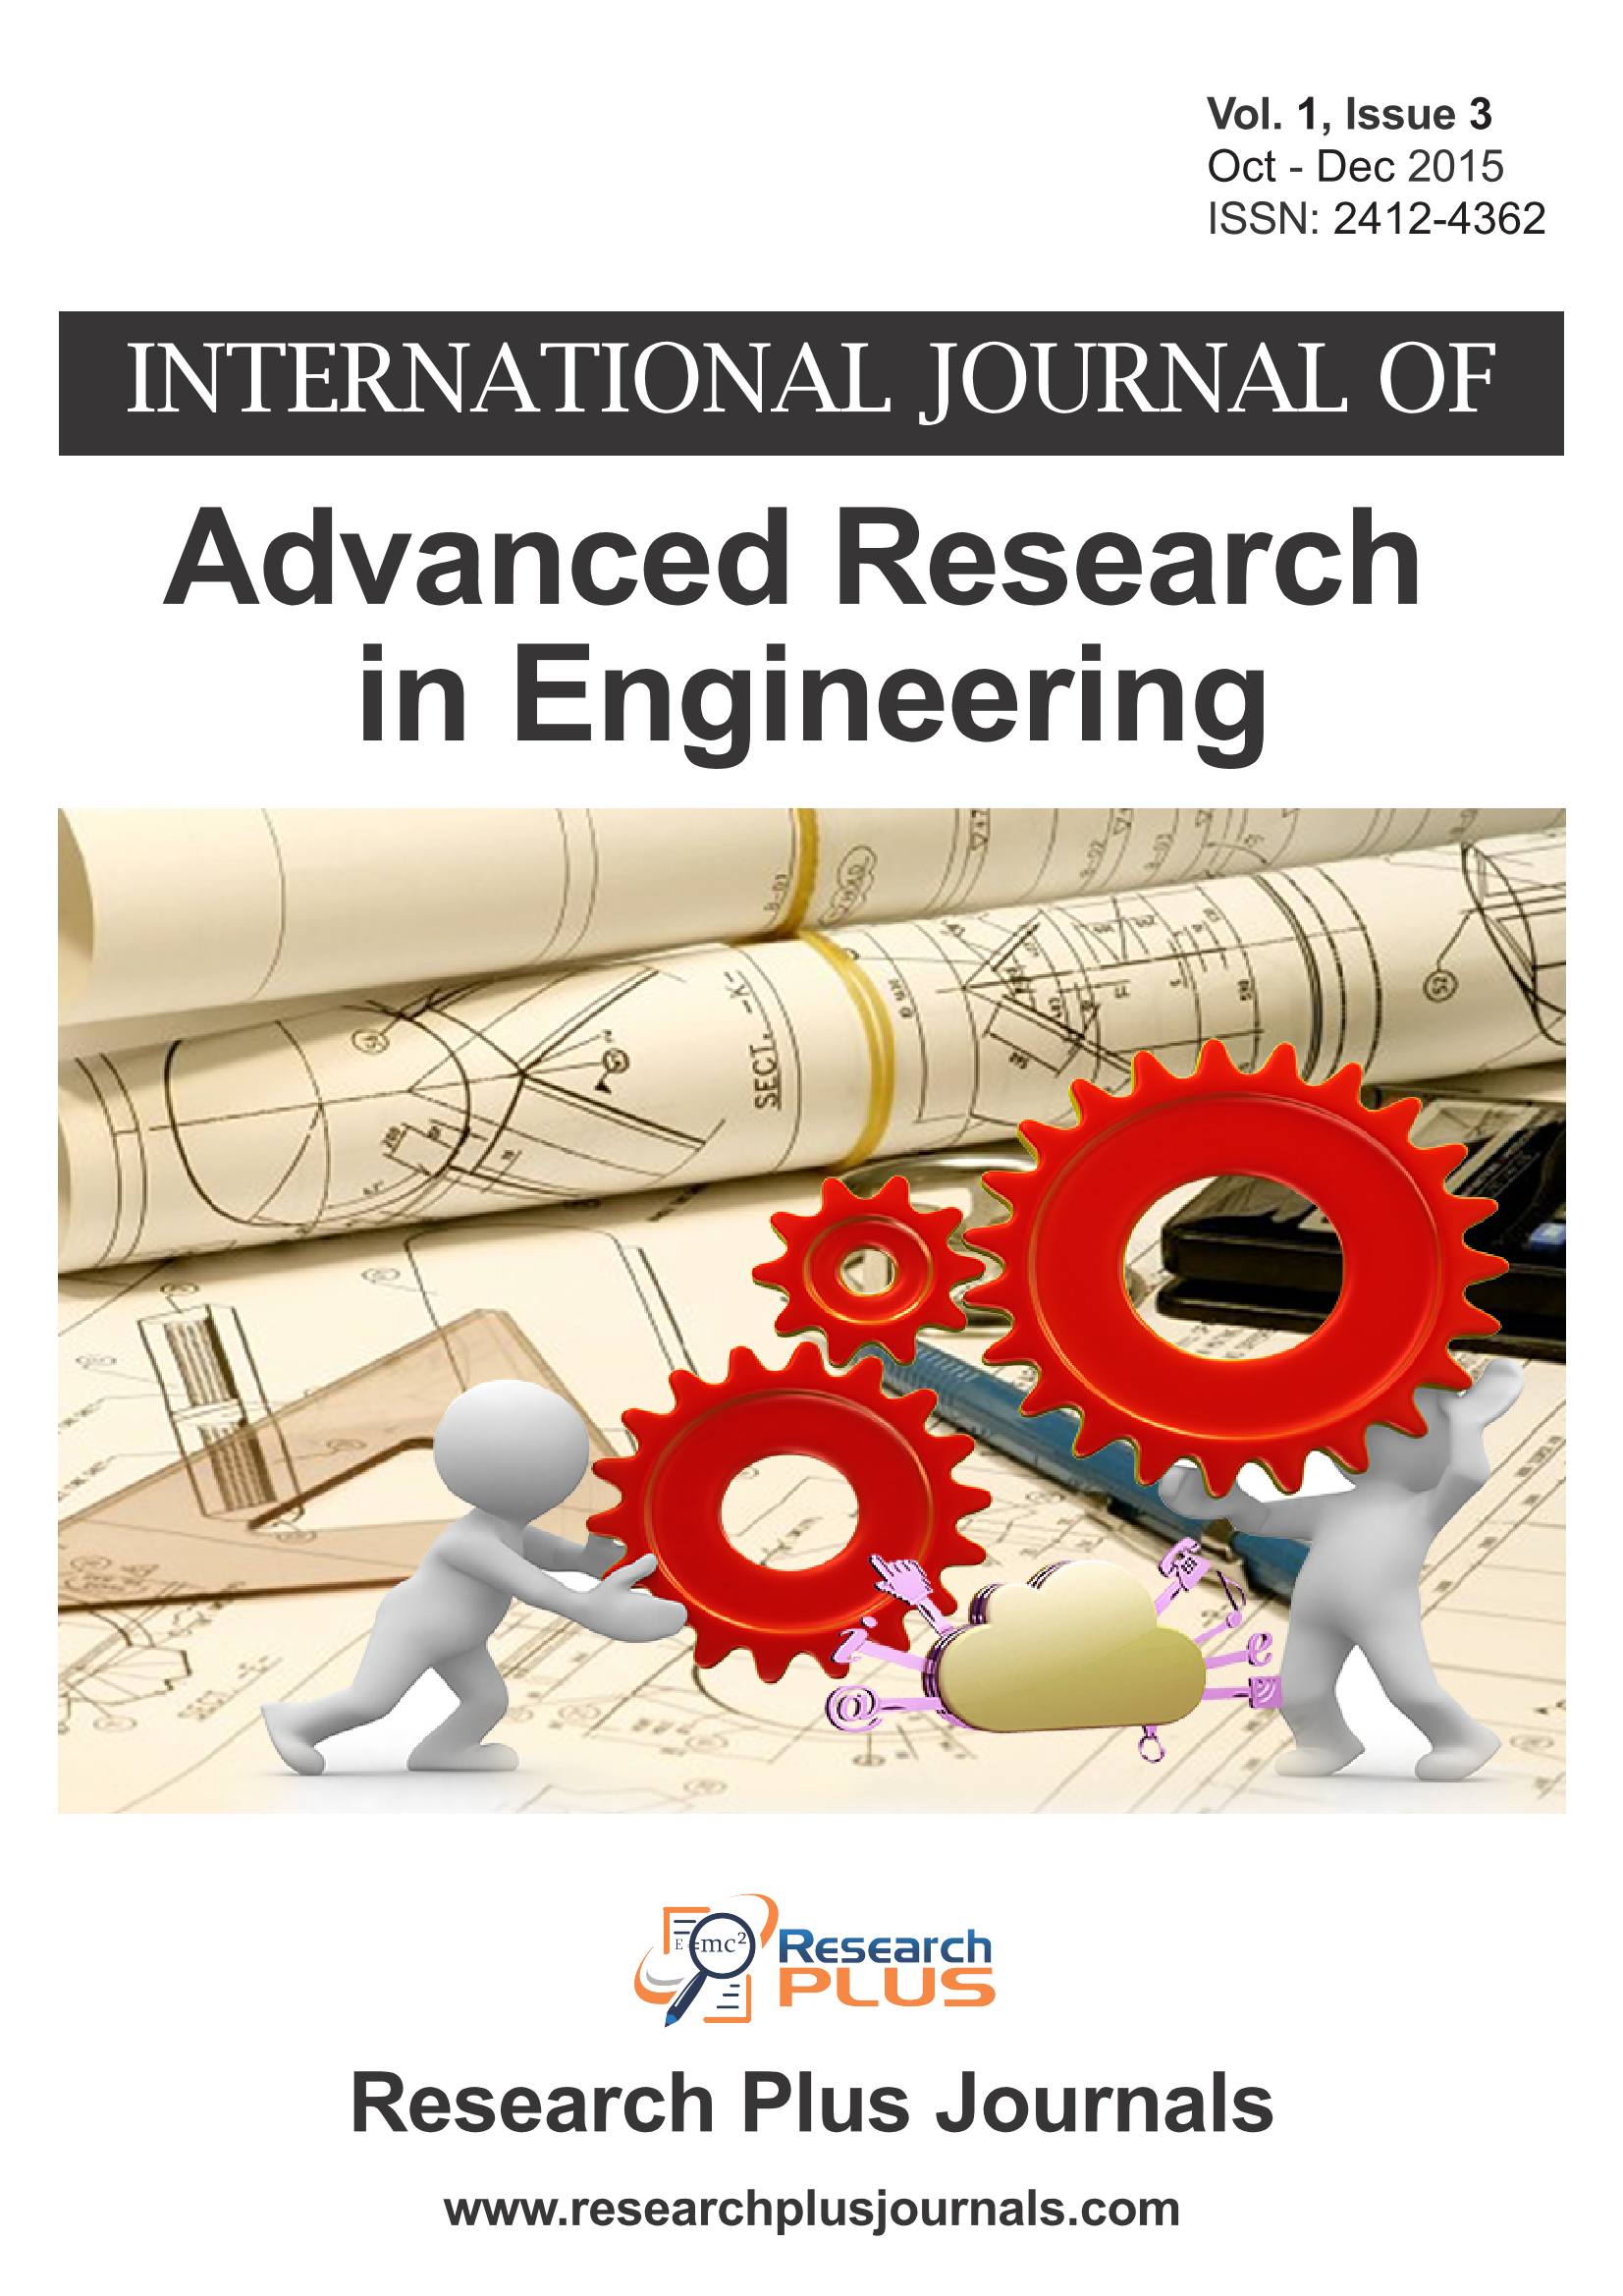 Volume 1, Issue 3, International Journal of Advanced Research in Engineering (IJARE)  (Online ISSN 2412-4362)